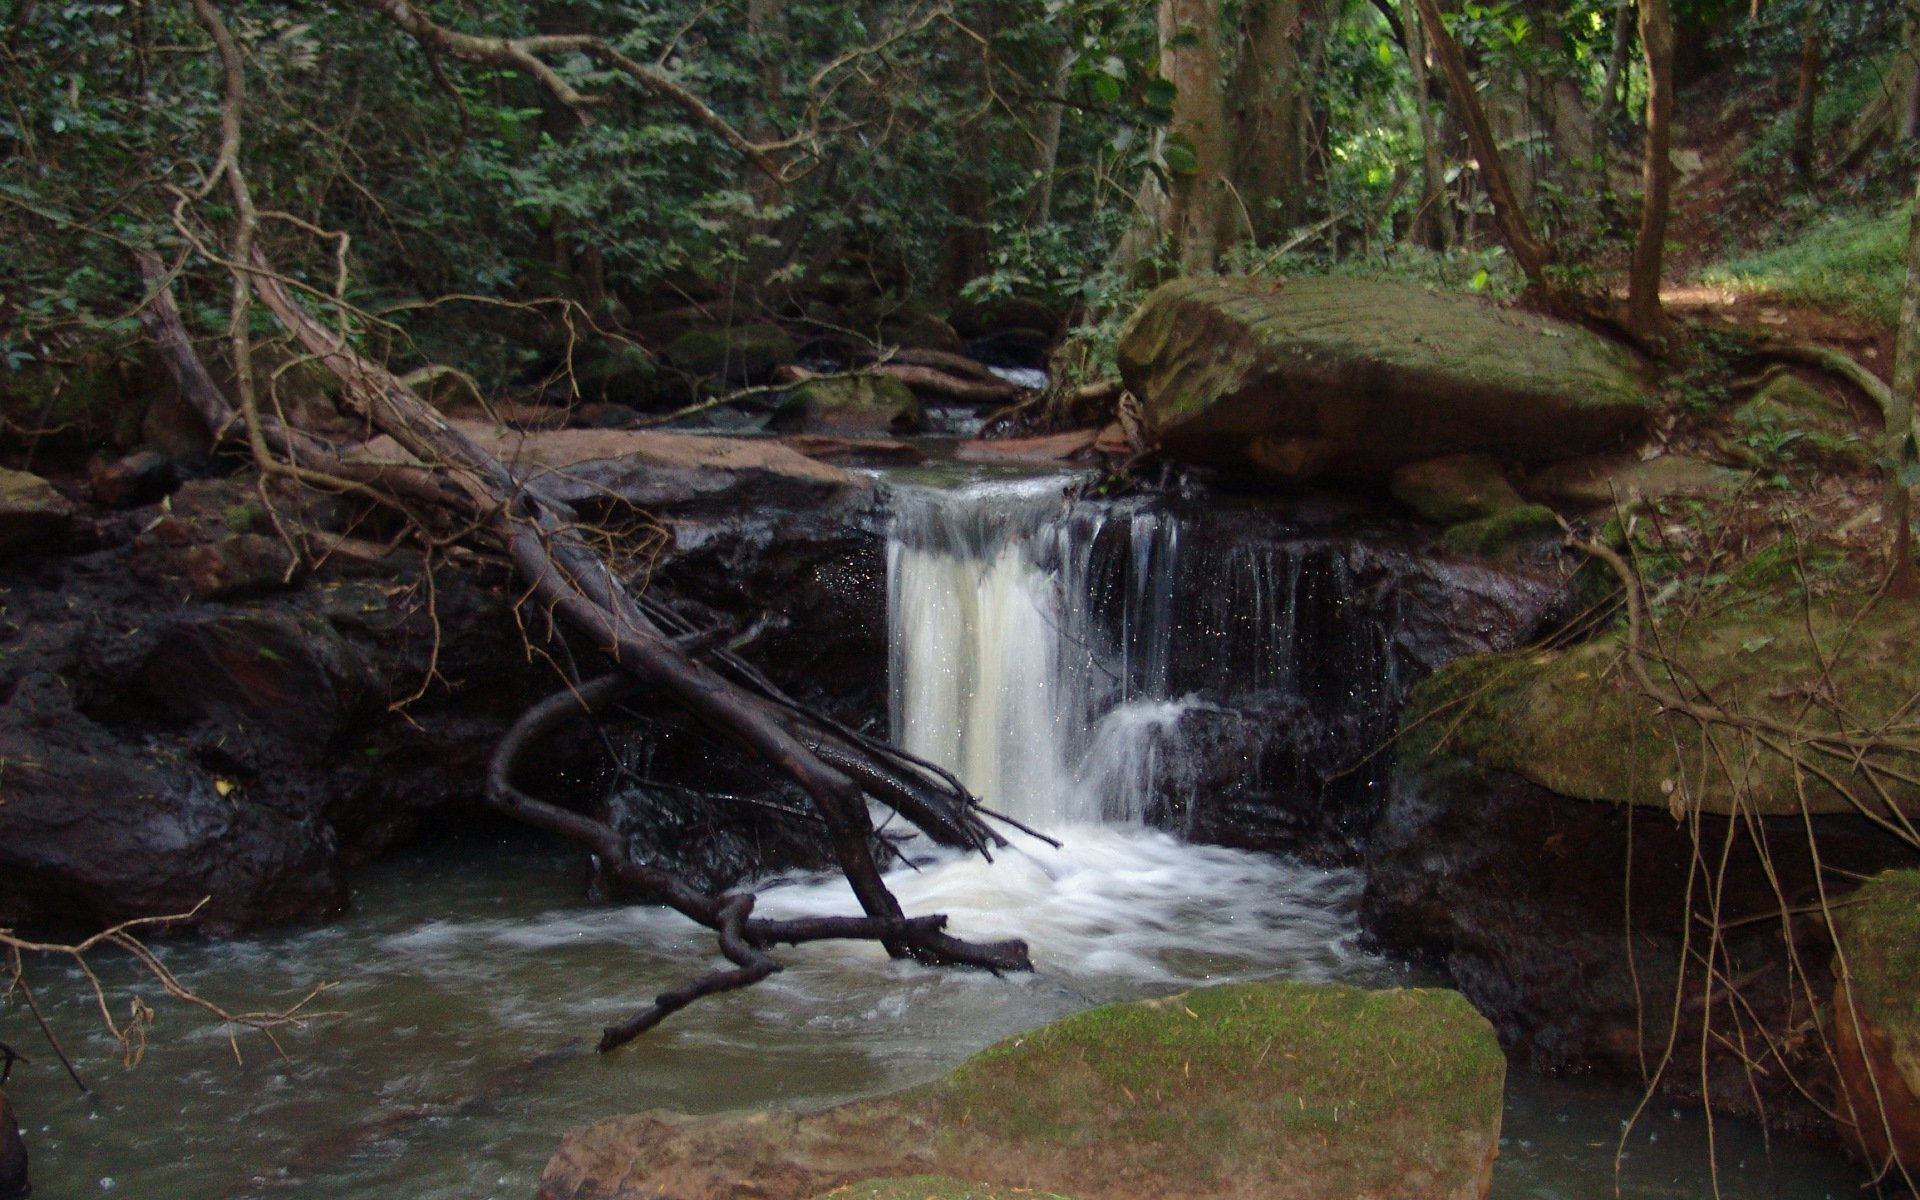 Karura Forest is the latest attraction in Kenya after it was opened to the public in February 2011. It is the largest of 3 gazetted forests in Nairobi.